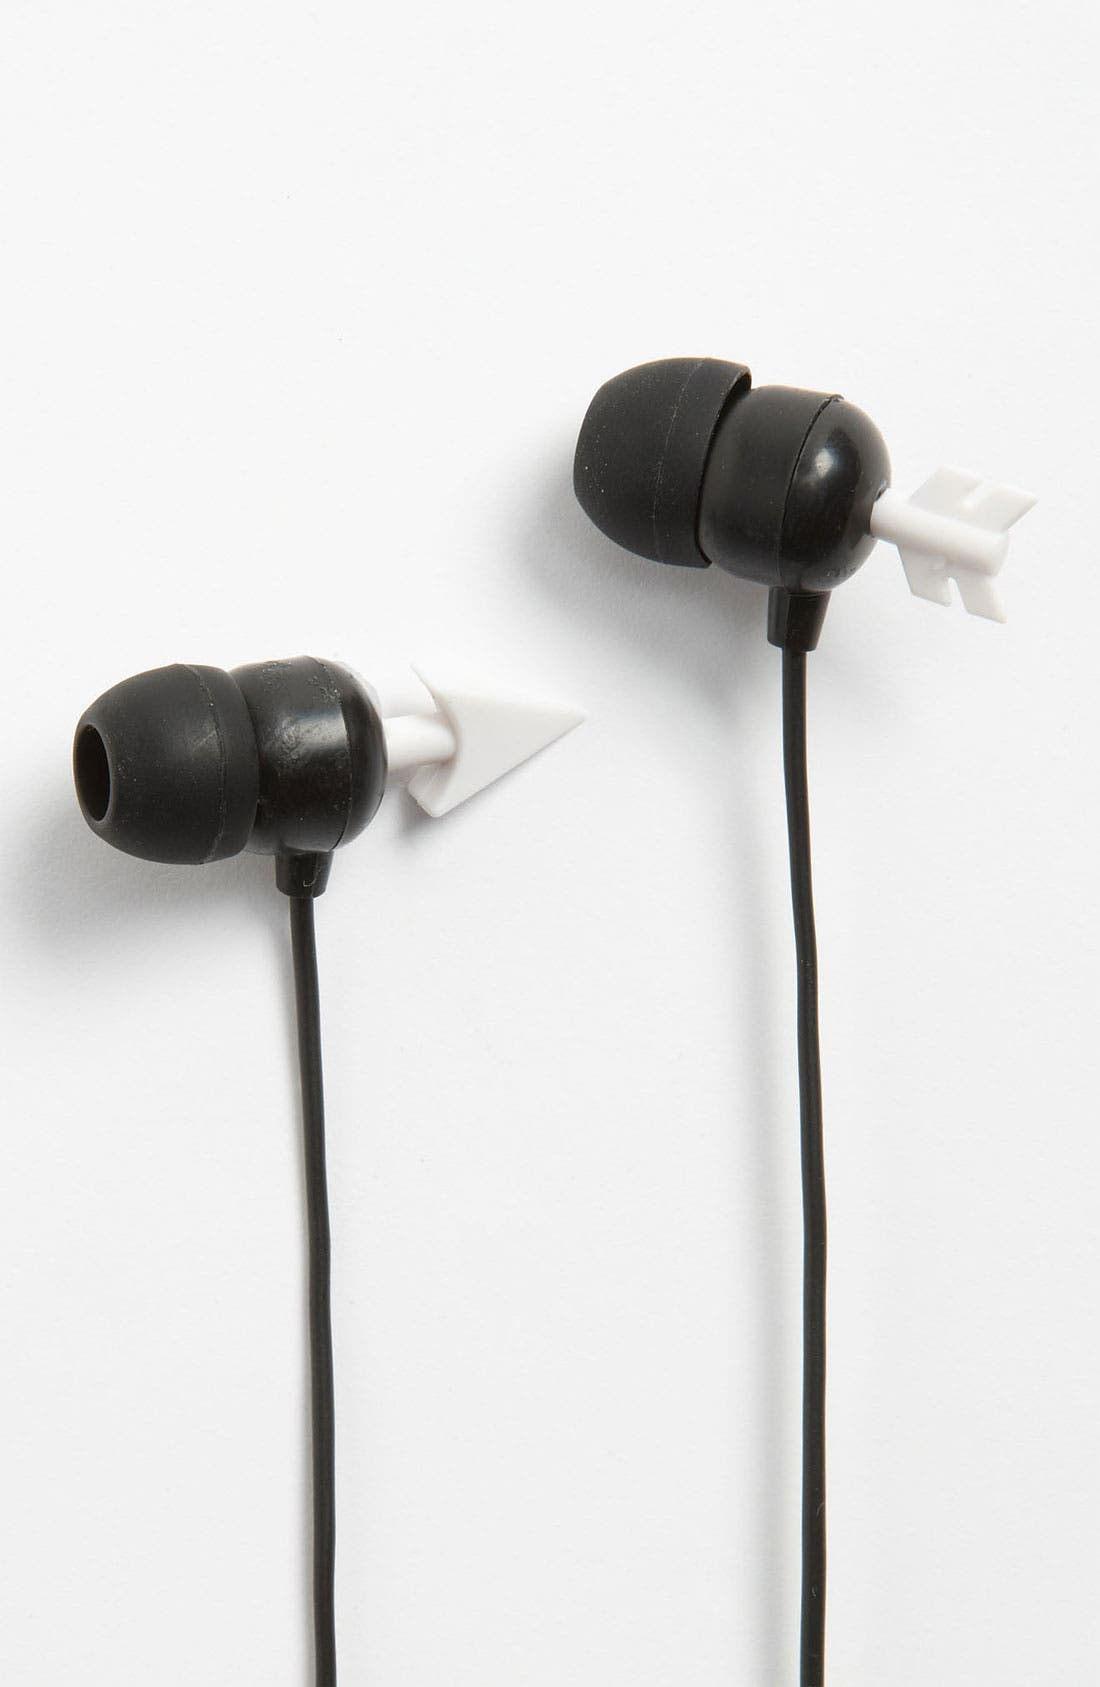 Alternate Image 1 Selected - Kikkerland Design Arrow Earbuds